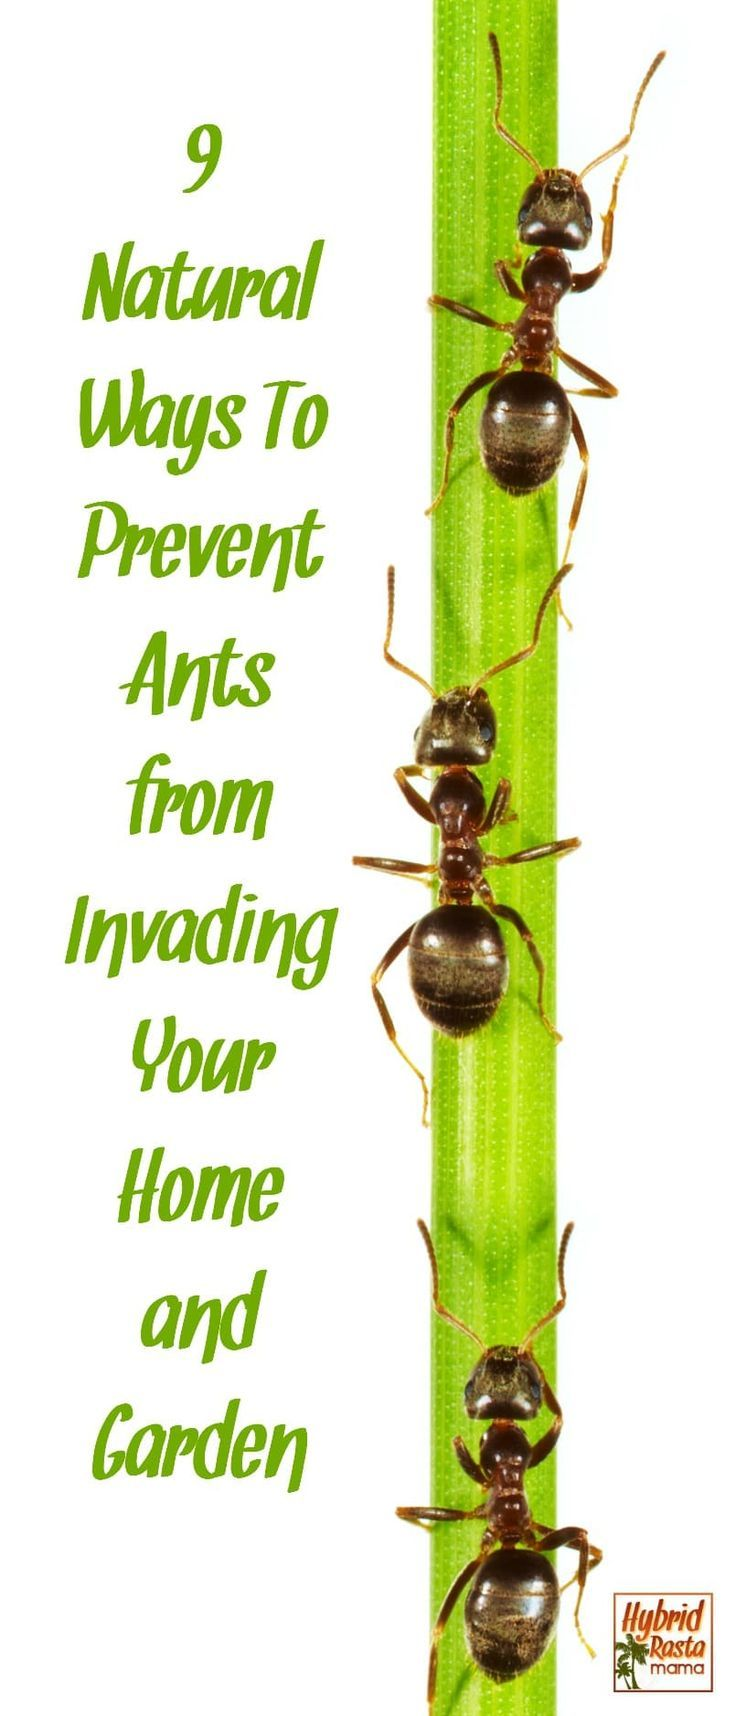 How To Get Rid Of Ants 9 Natural Ways To Prevent Ants Get Rid Of Ants Rid Of Ants Ants In House